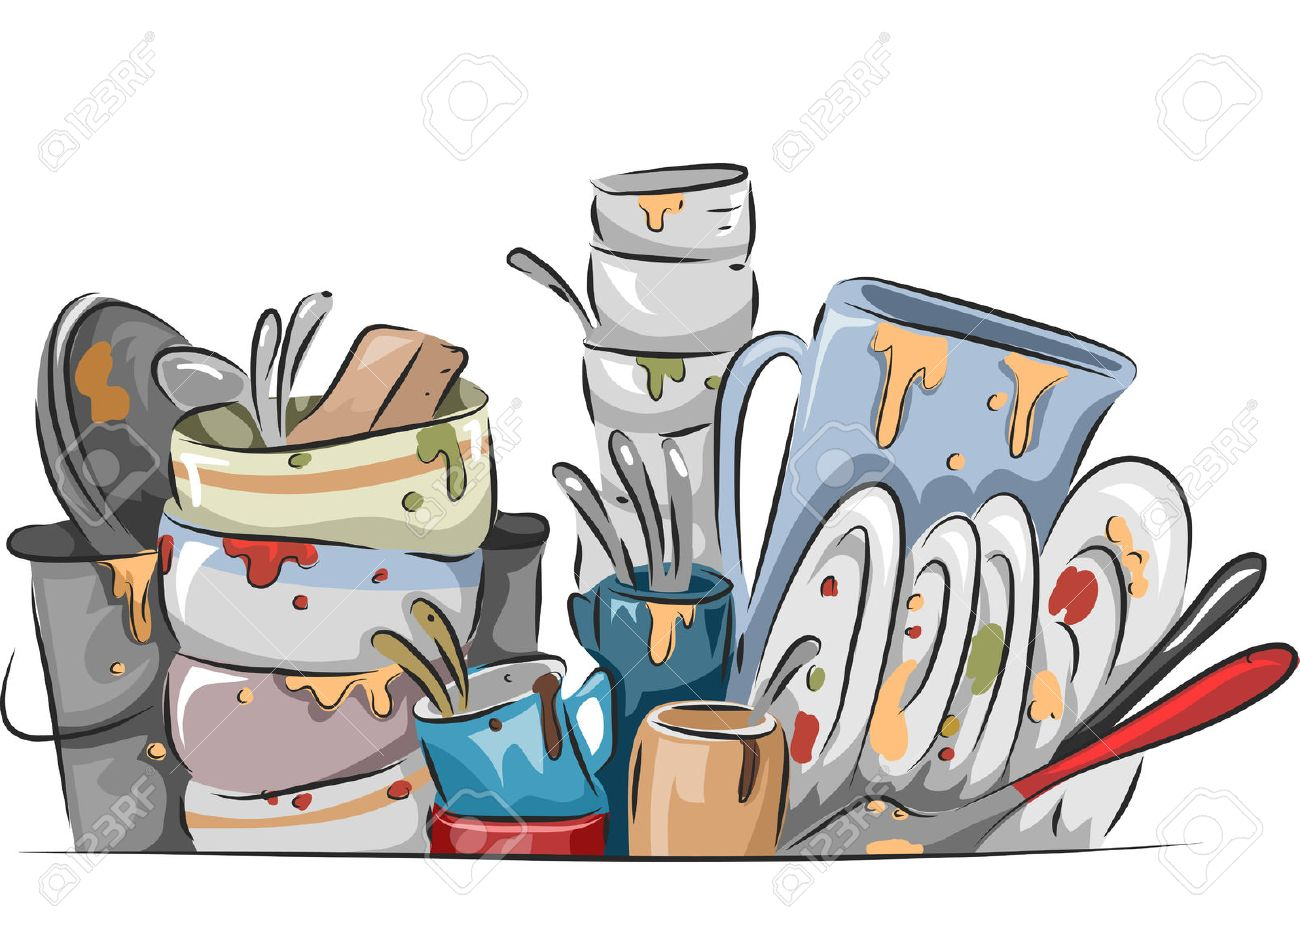 illustration of a stack of dirty dishes waiting to be washed stock rh 123rf com dirty dishes clip art image washing dirty dishes clipart